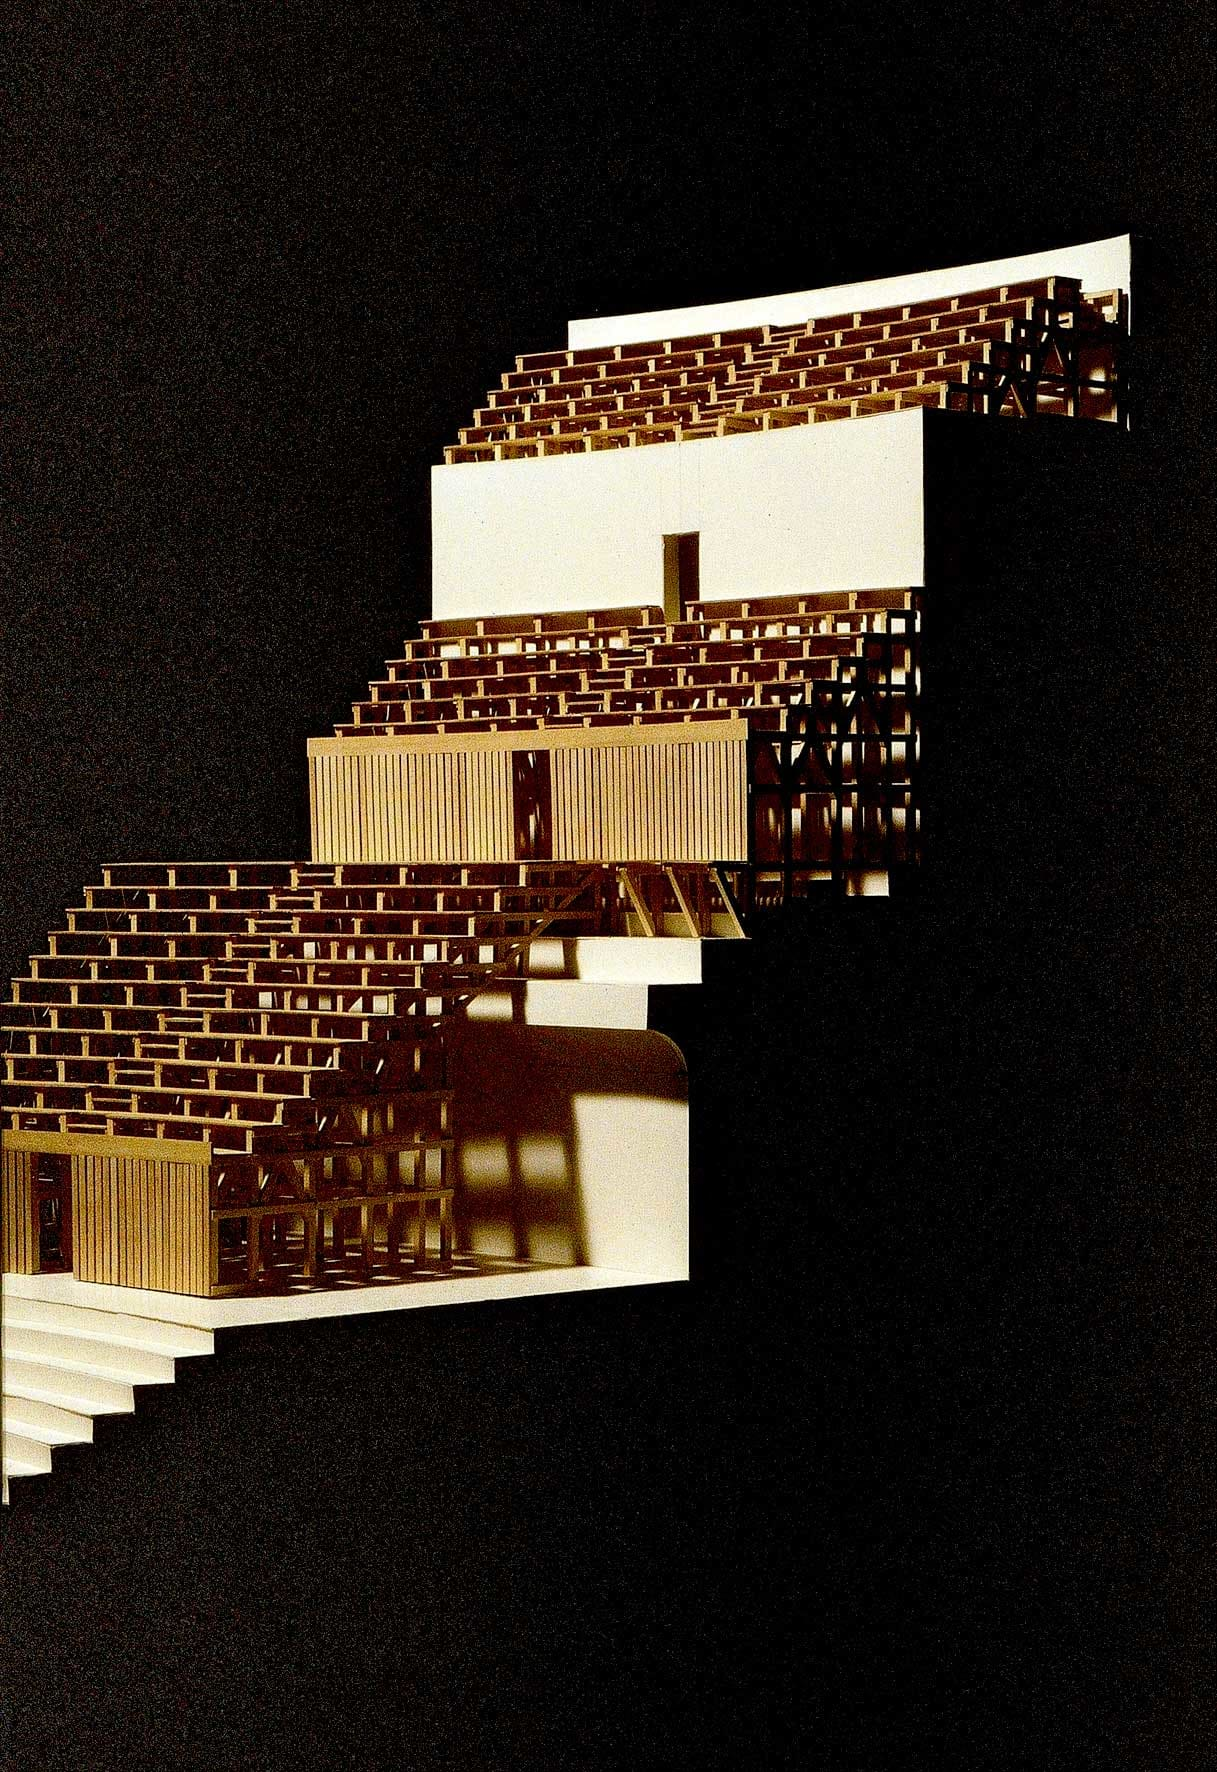 Casa Oliva Netherlands Architectural Models A Collection Curated By Divisare